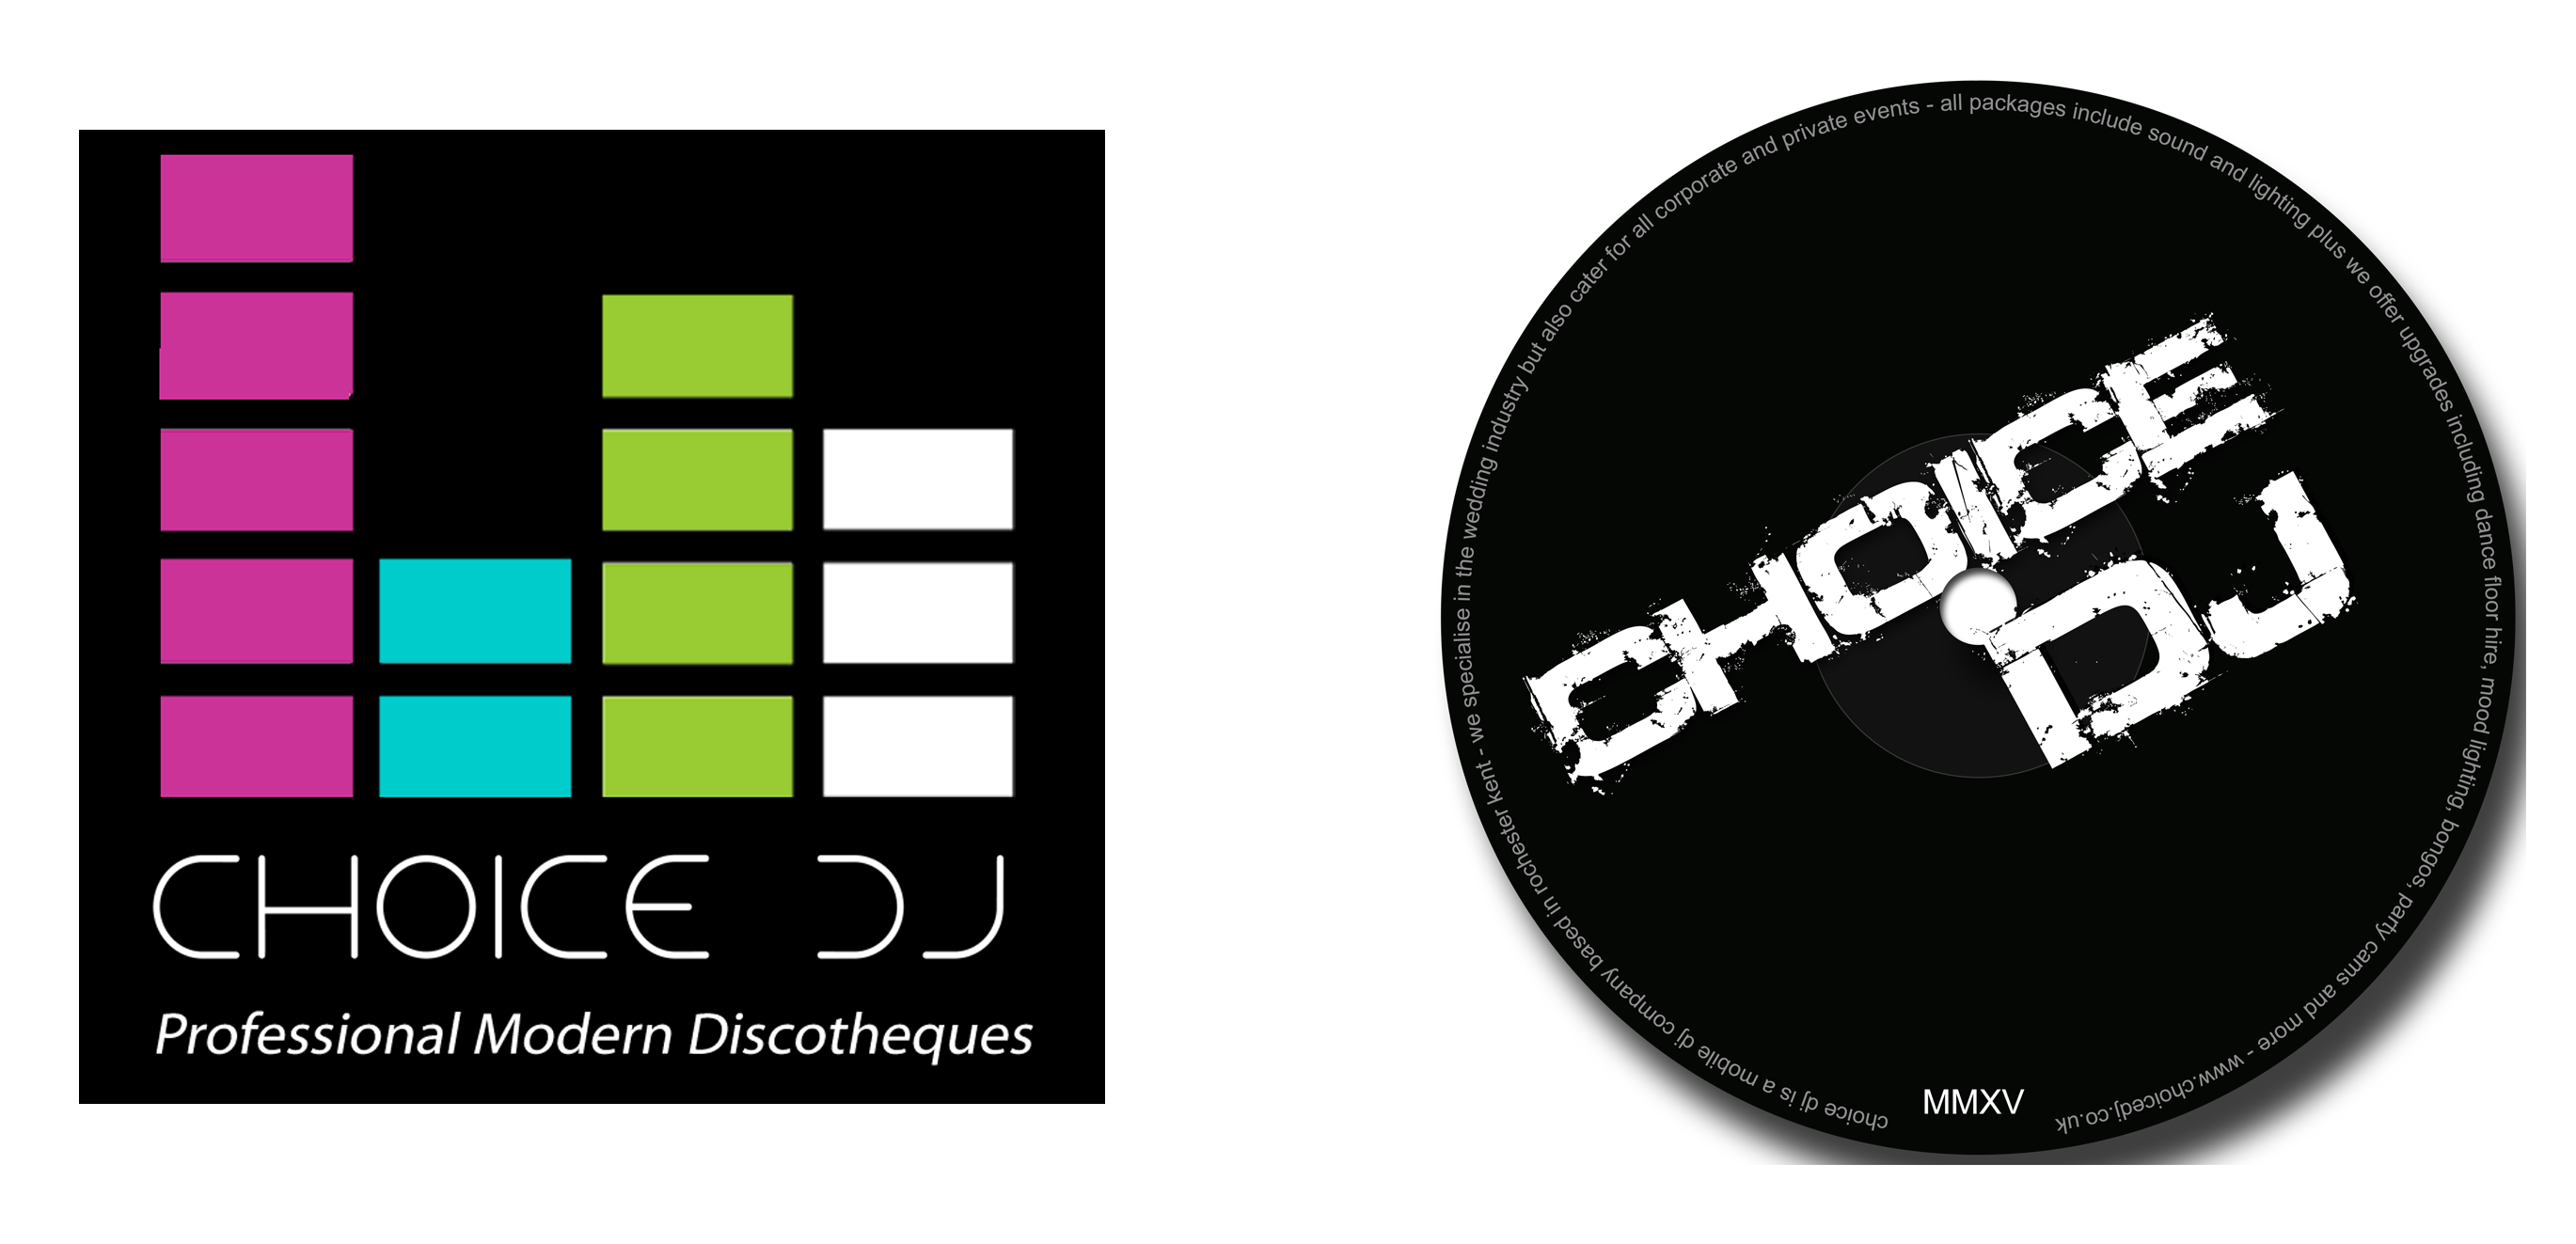 Dj logo graphic design png. New choice oldnew